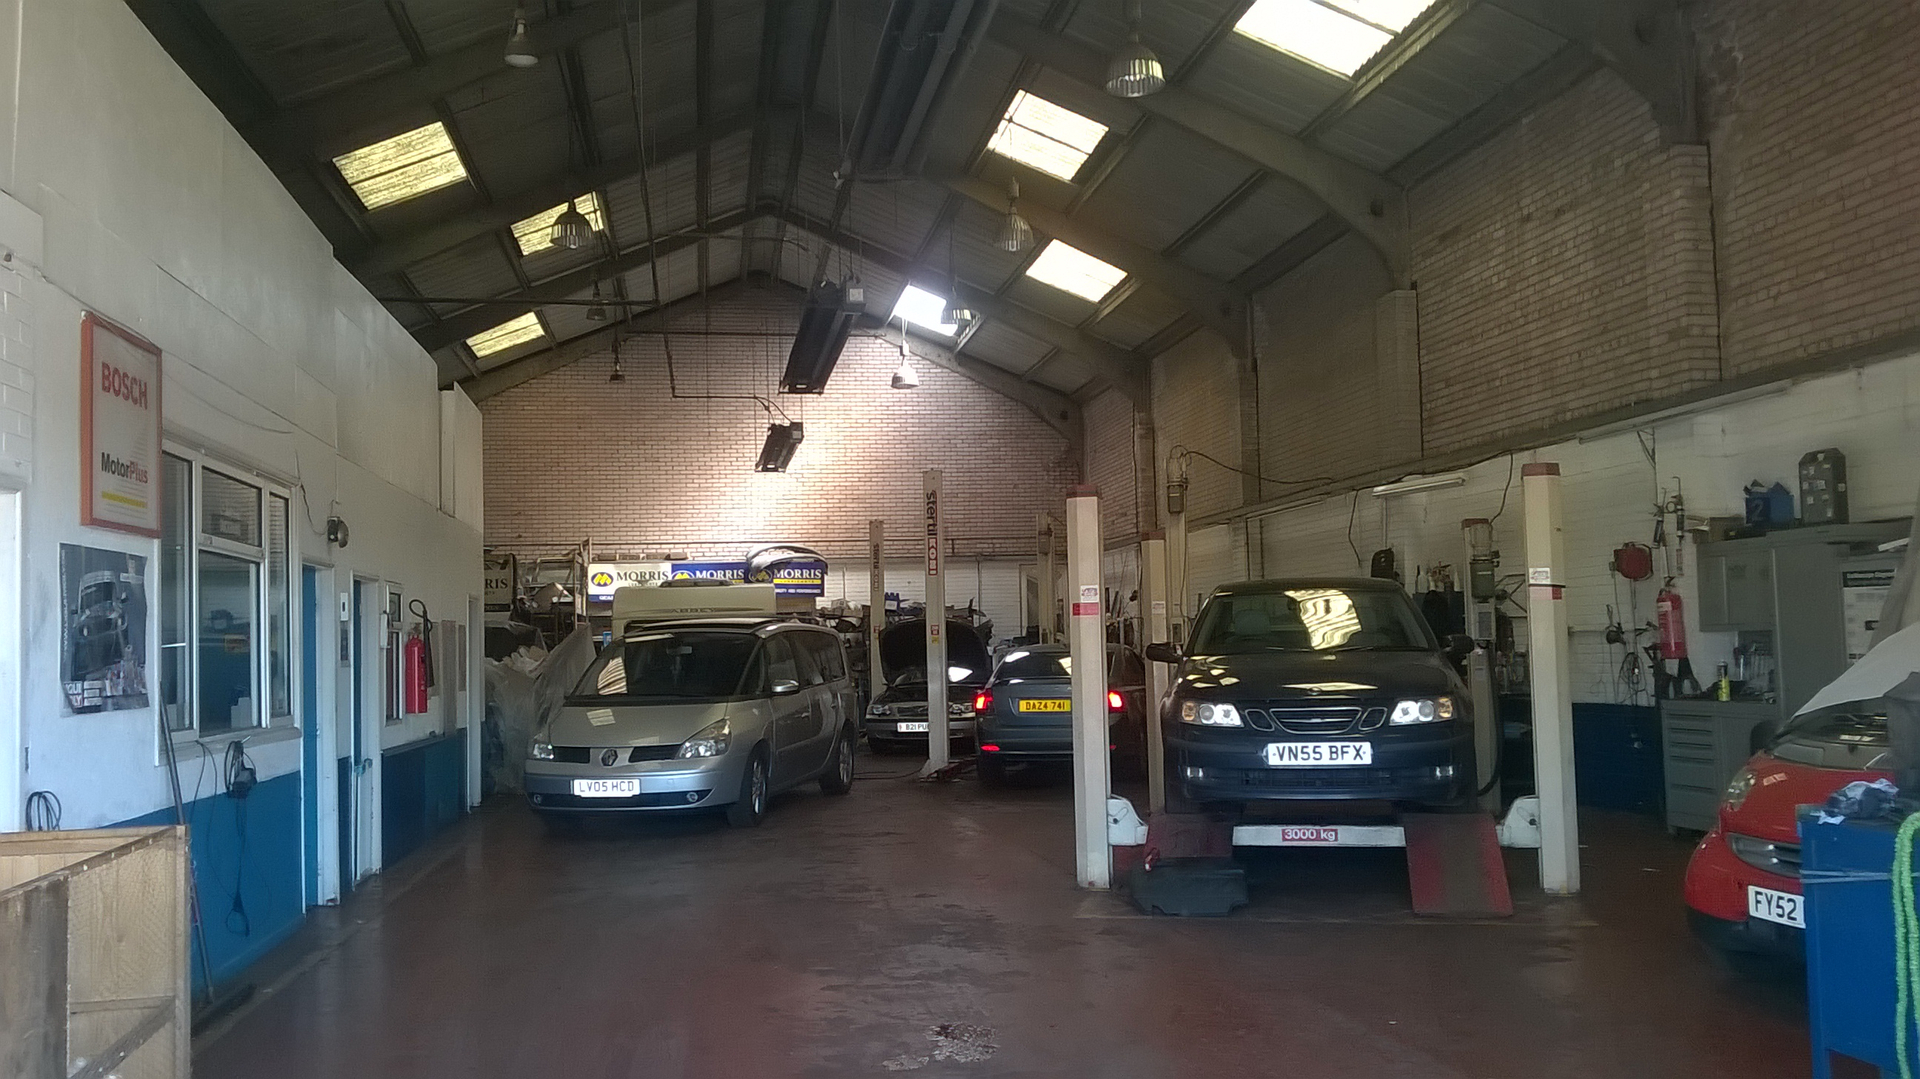 volvo covered quality great r service in xc manual diagnostic detail and information repair workshop the are troubleshooting for to procedures